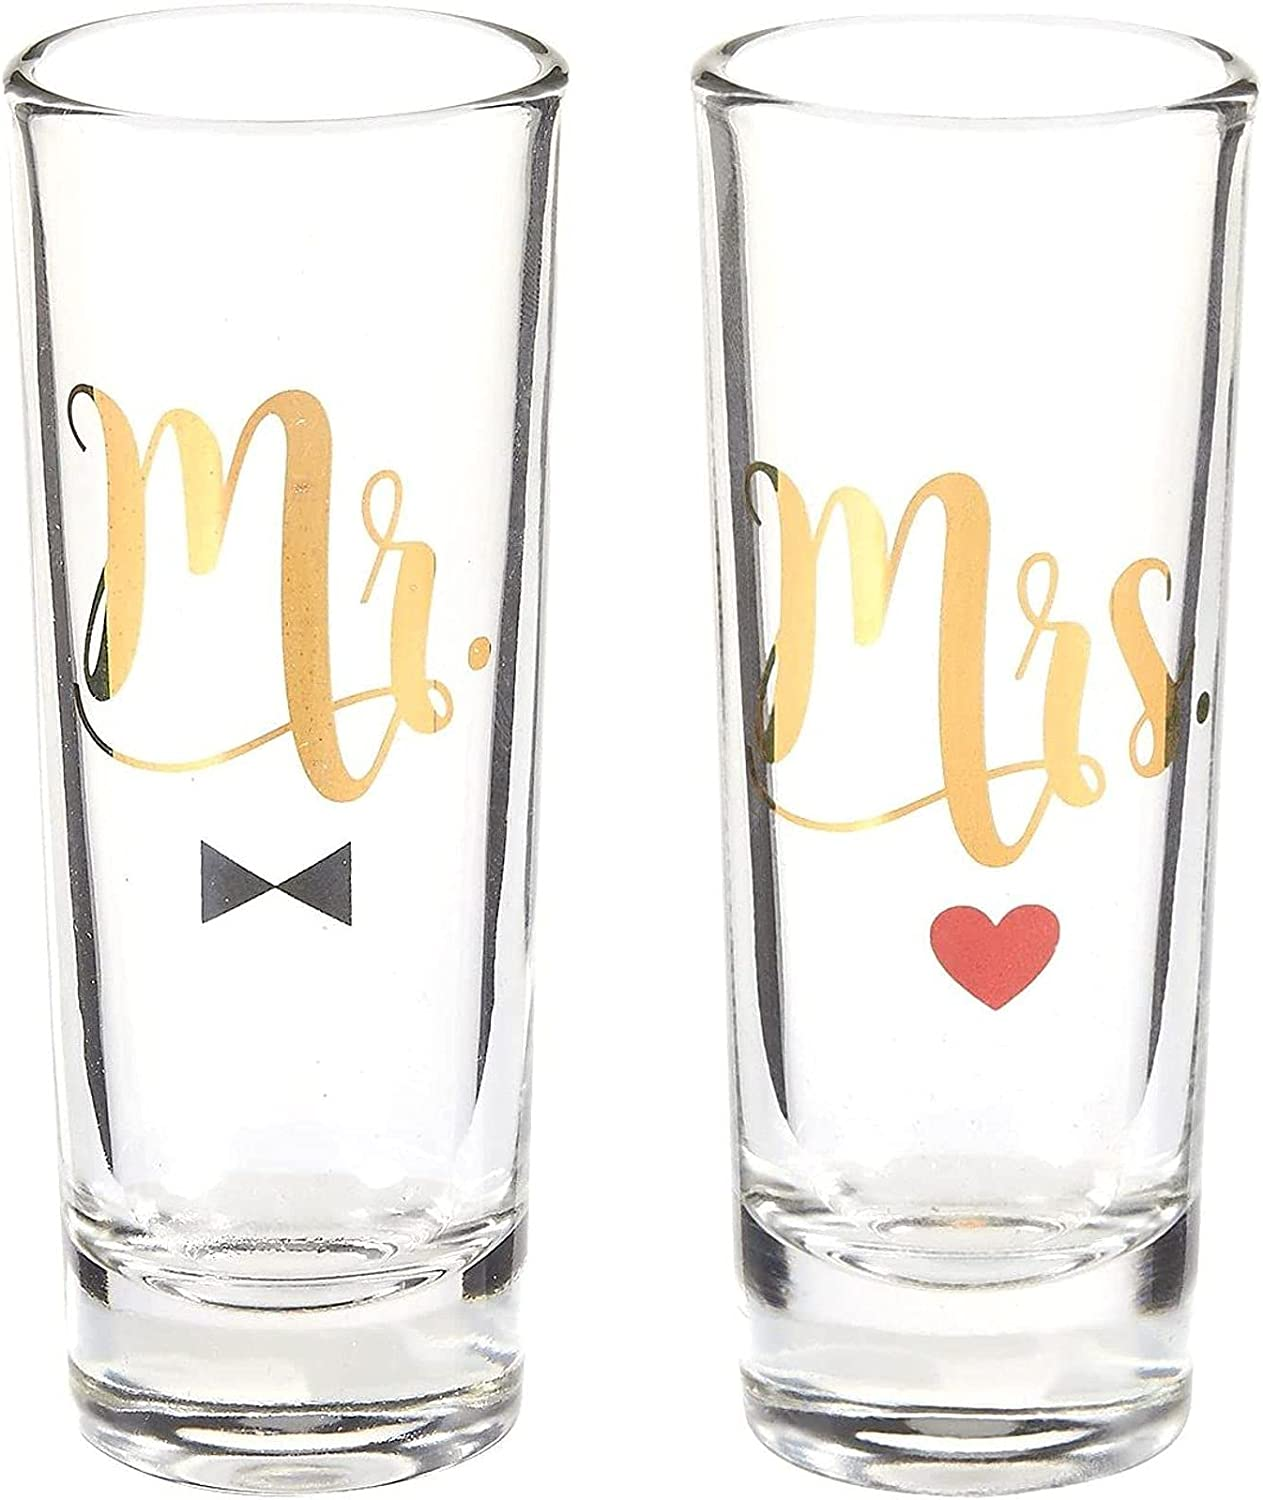 Mr Super-cheap and Mrs Shot Glasses with Gold Gift Set Foil Bride f Groom Ranking integrated 1st place